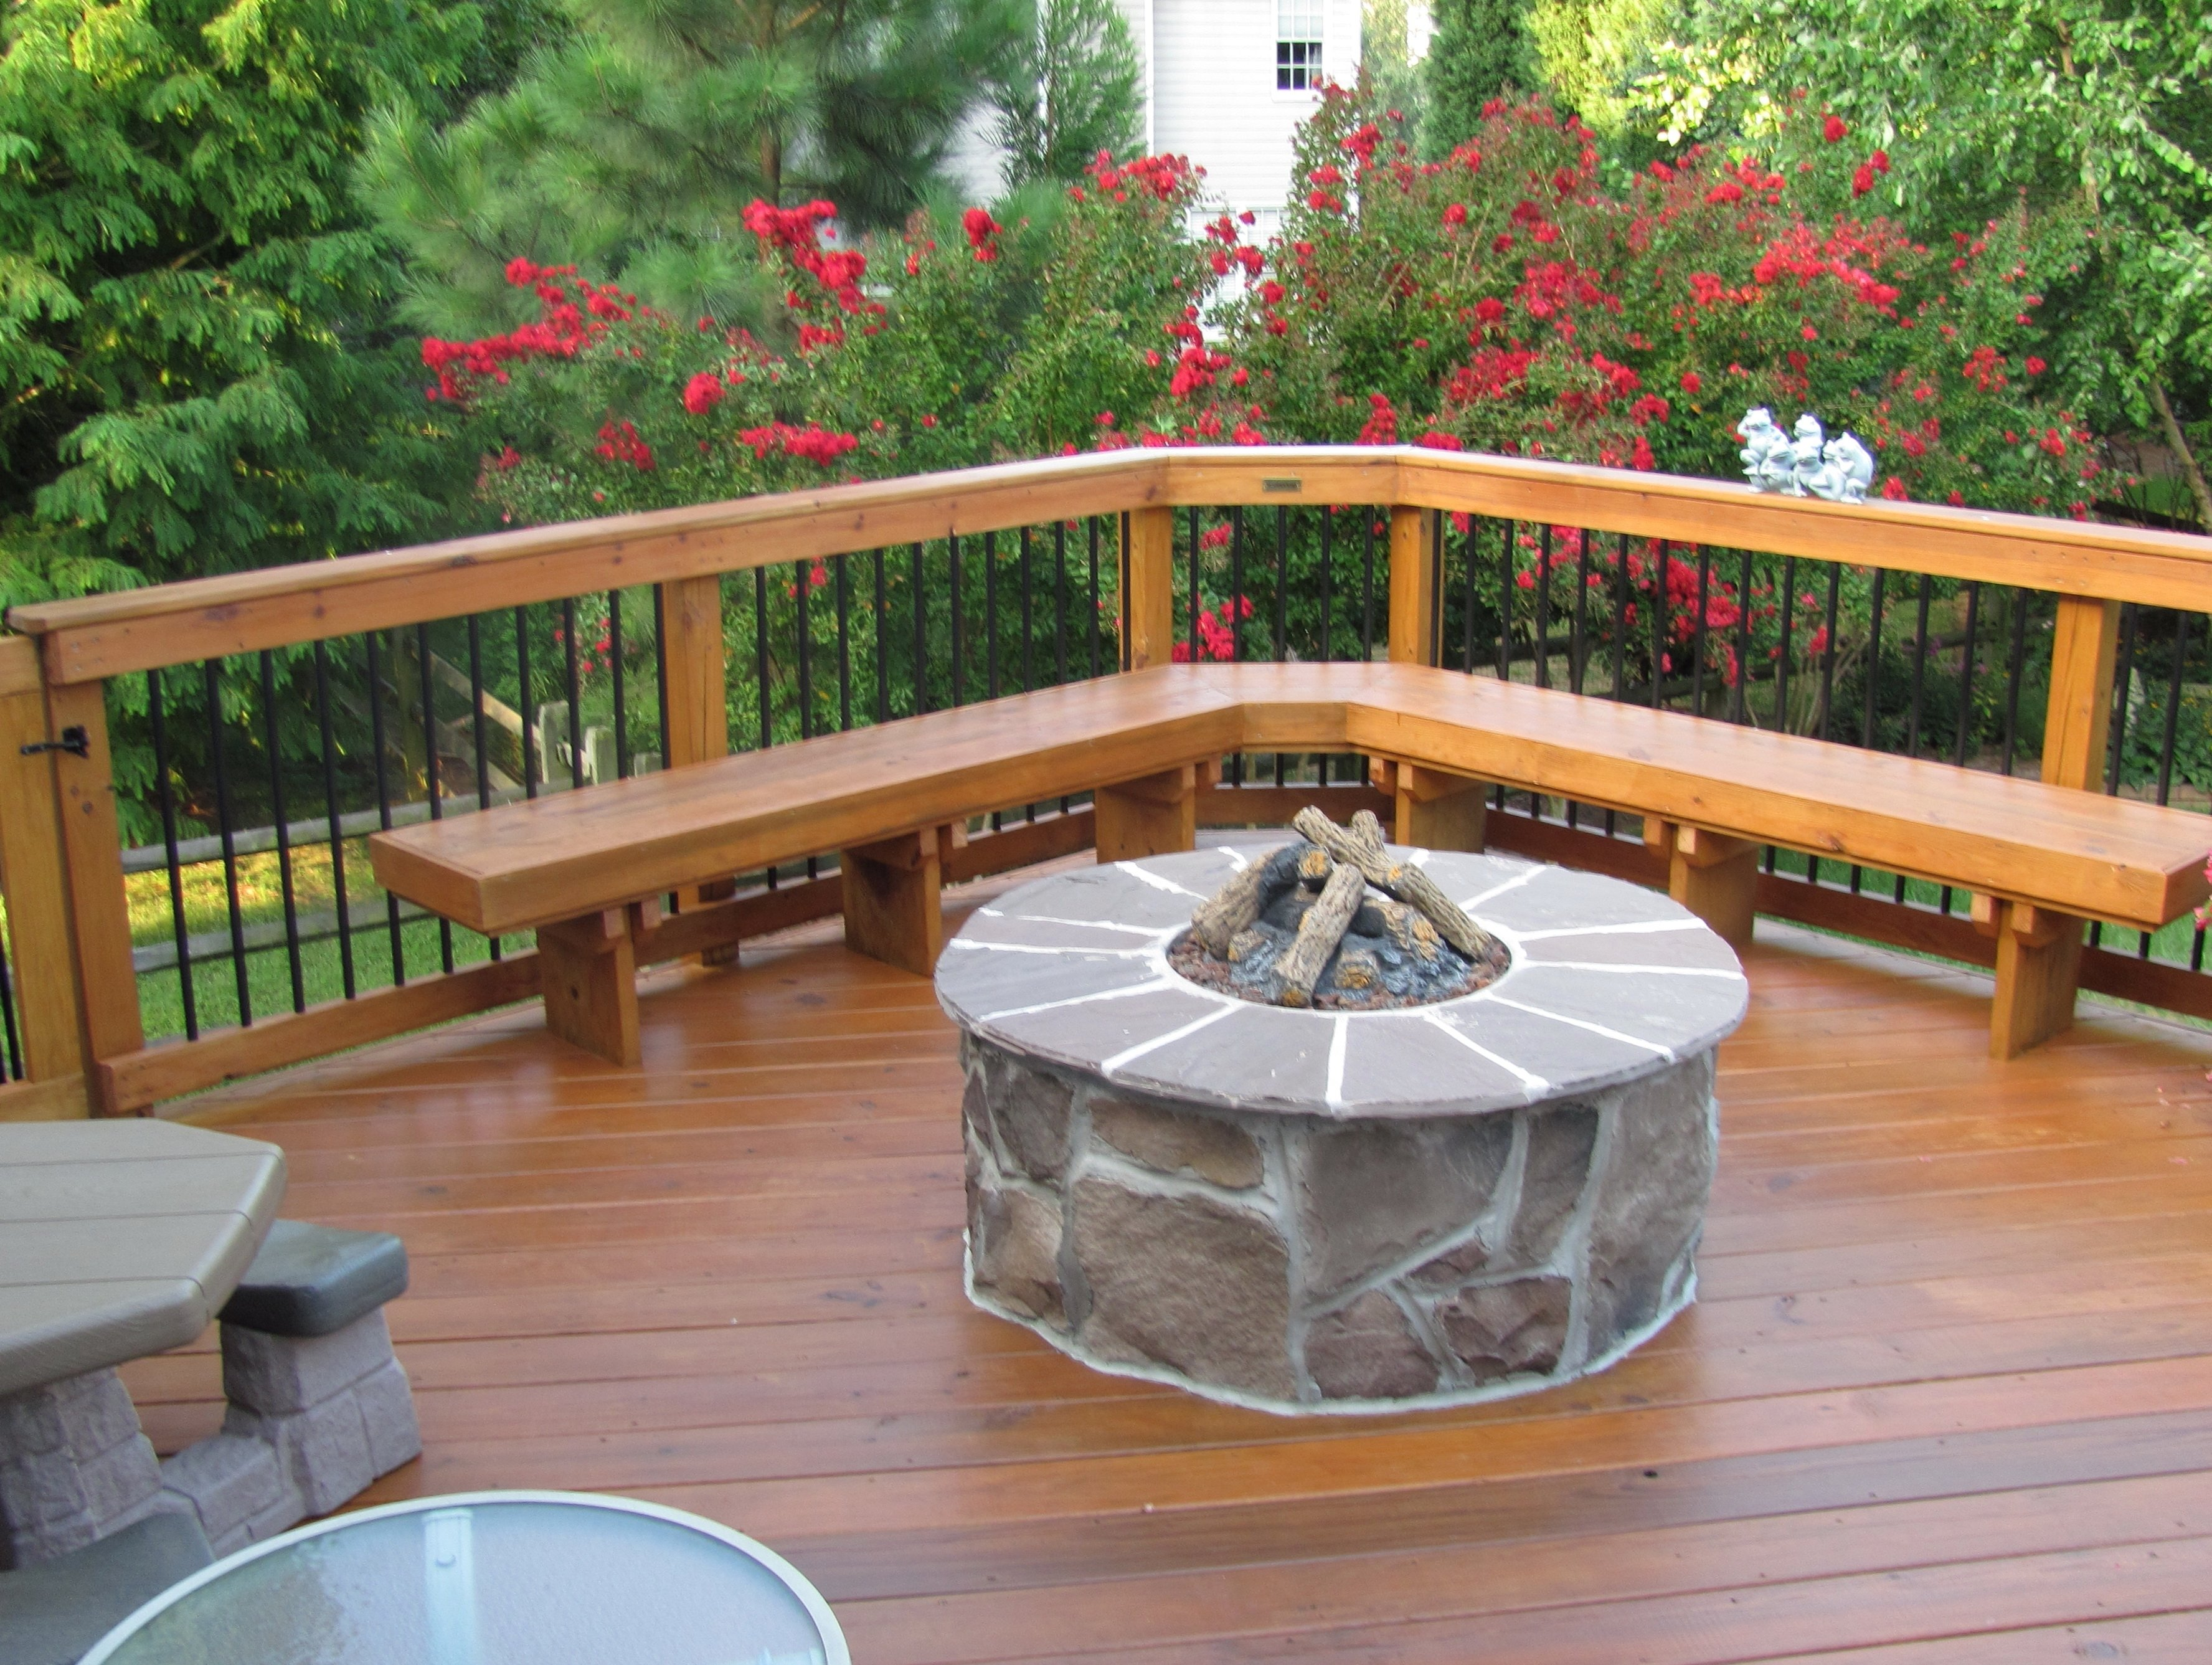 10 Stylish Deck Ideas With Fire Pit fire pits design fabulous deck designs with hot tub and fire pit in 2021